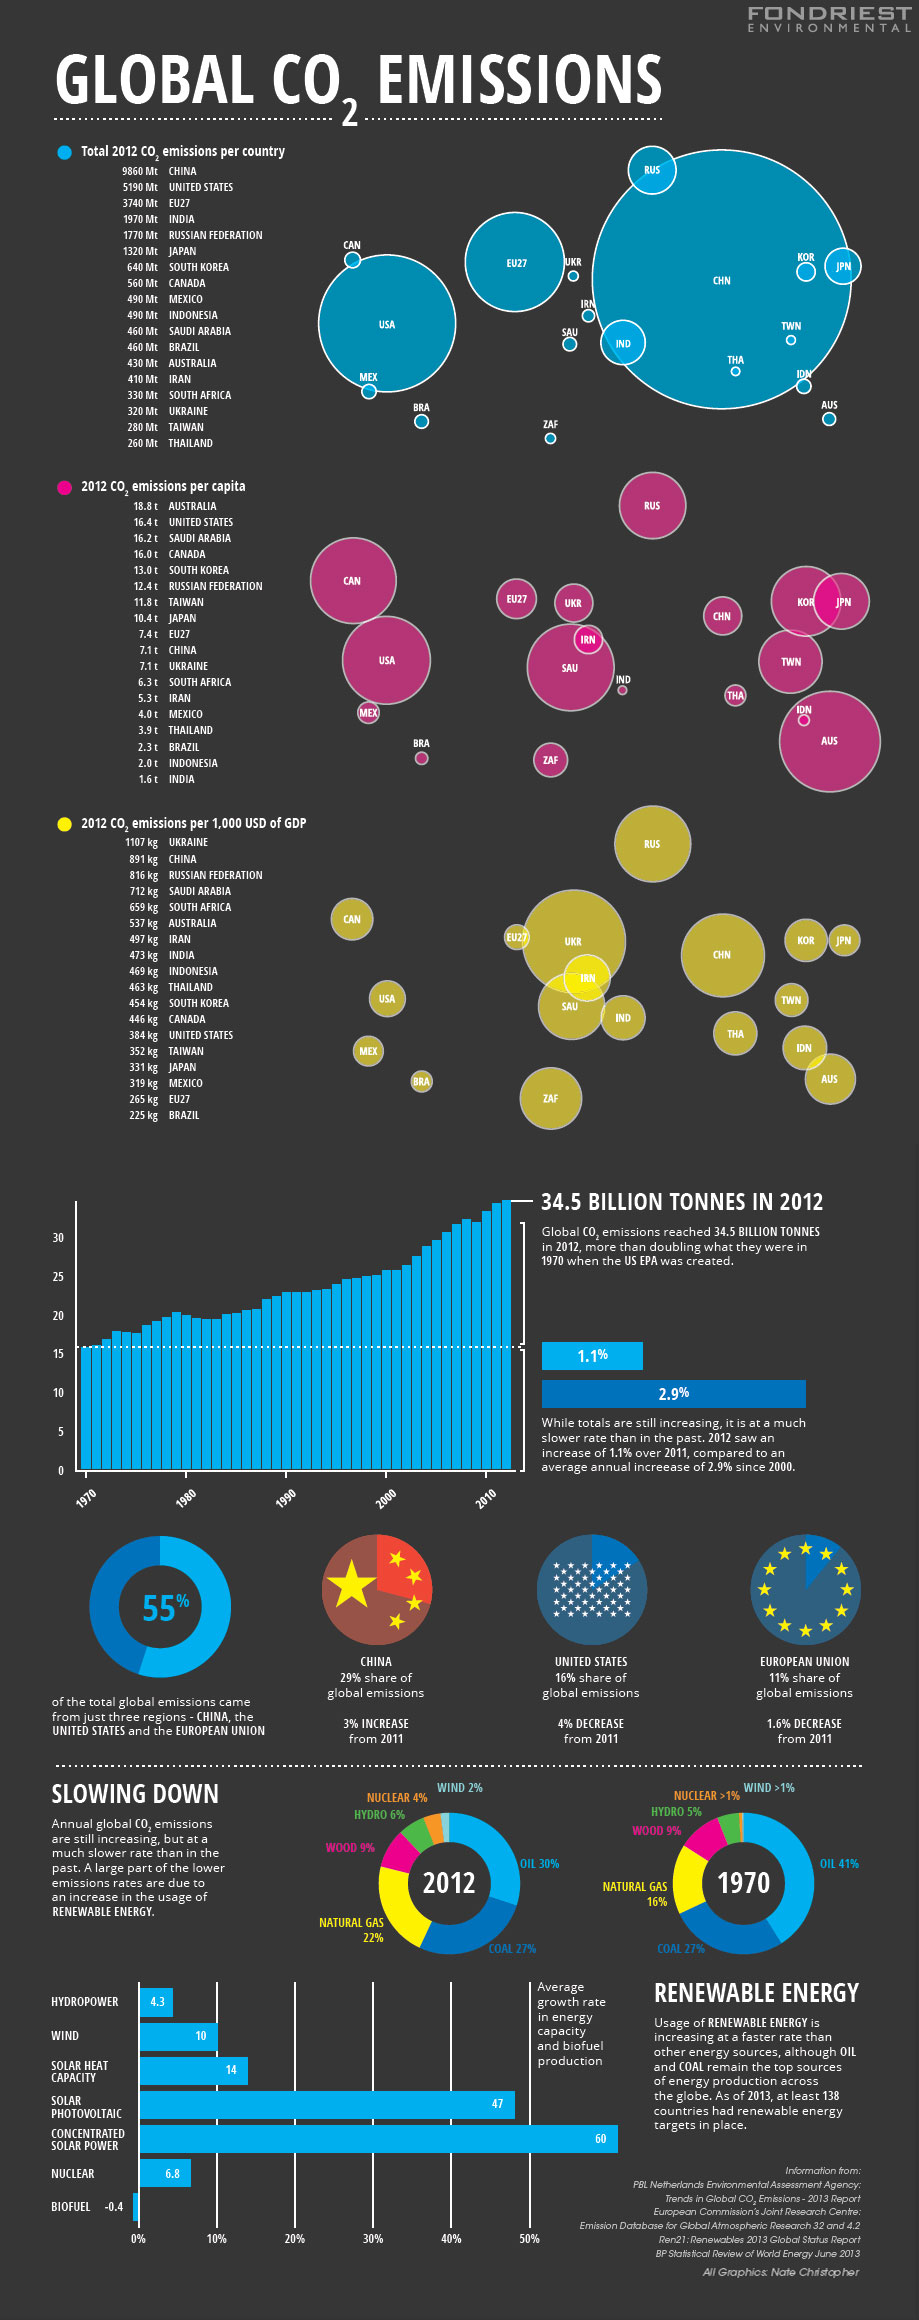 Global Carbon Dioxide Emissions infographic (Credit: Nate Christopher / Fondriest Environmental)